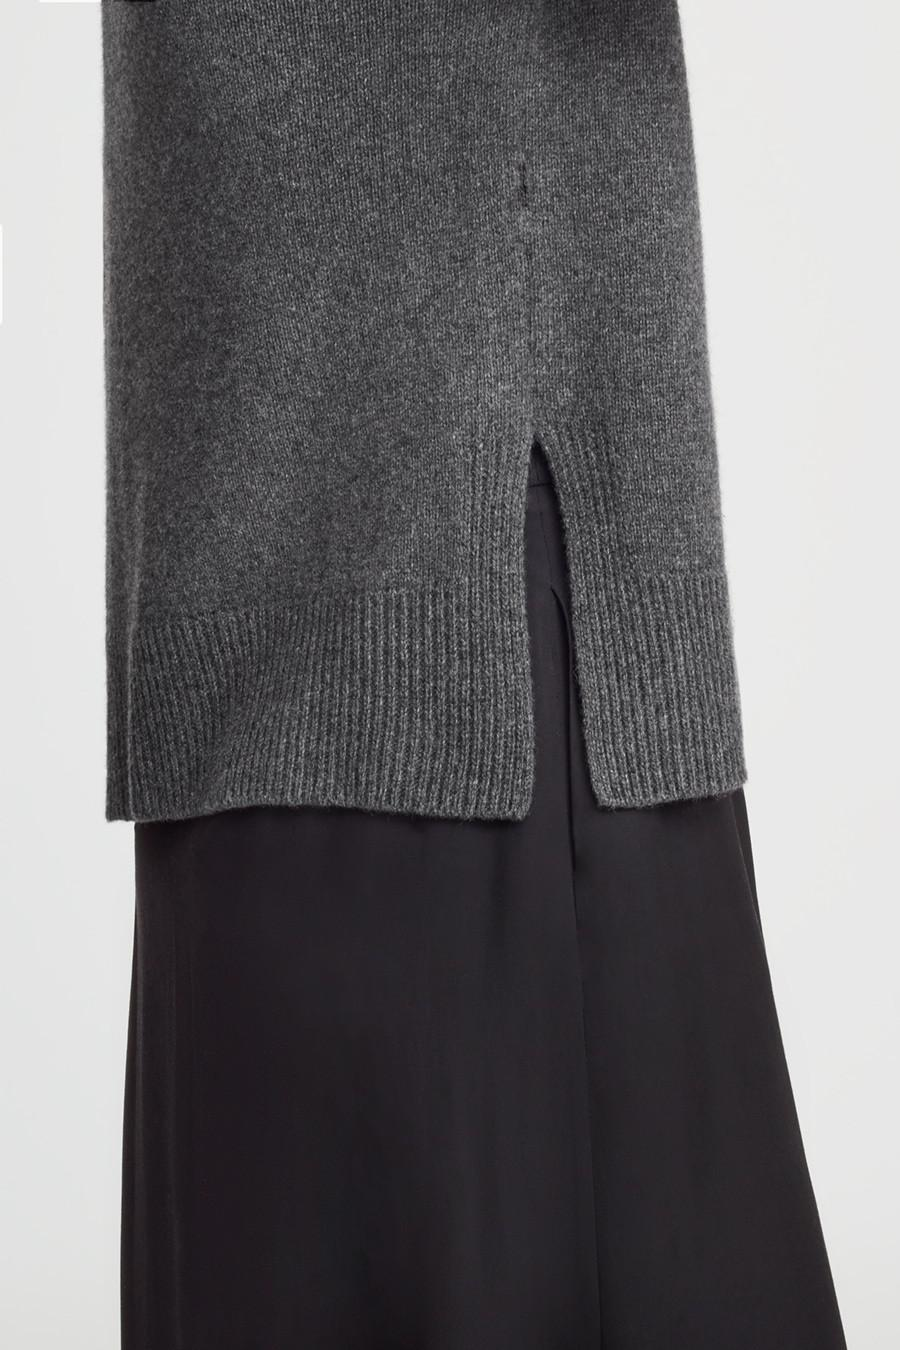 Women's Recycled Crewneck Sweater in Charcoal | Size: 3